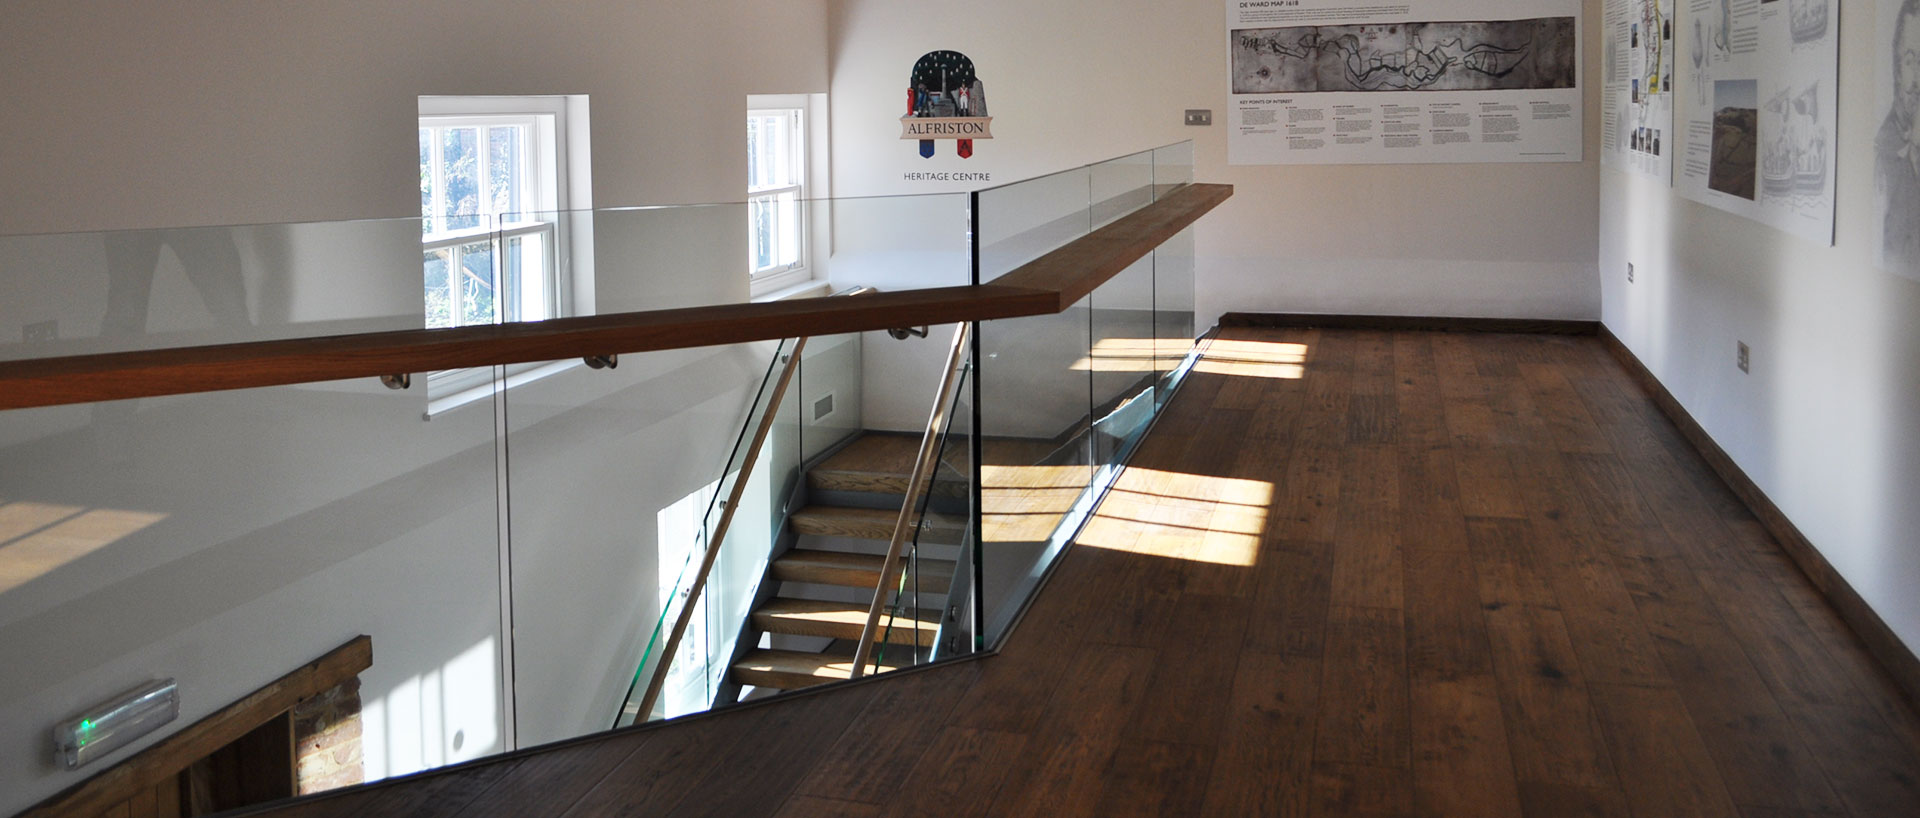 Frameless Glass Balustrading to Mezzanine Floor Education Section